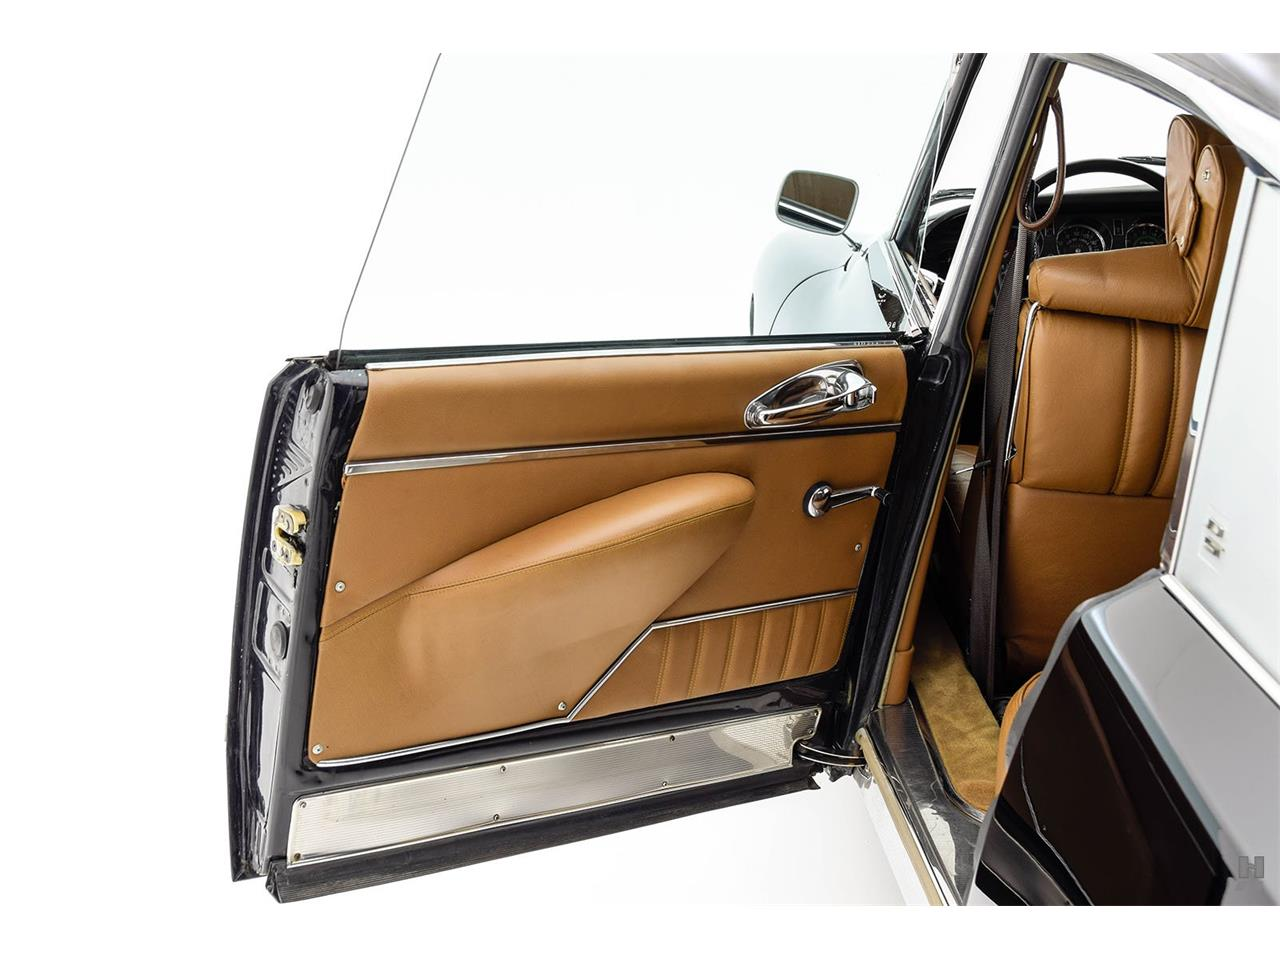 Large Picture of Classic 1972 Citroen DS21 Pallas Offered by Hyman Ltd. Classic Cars - P3WY